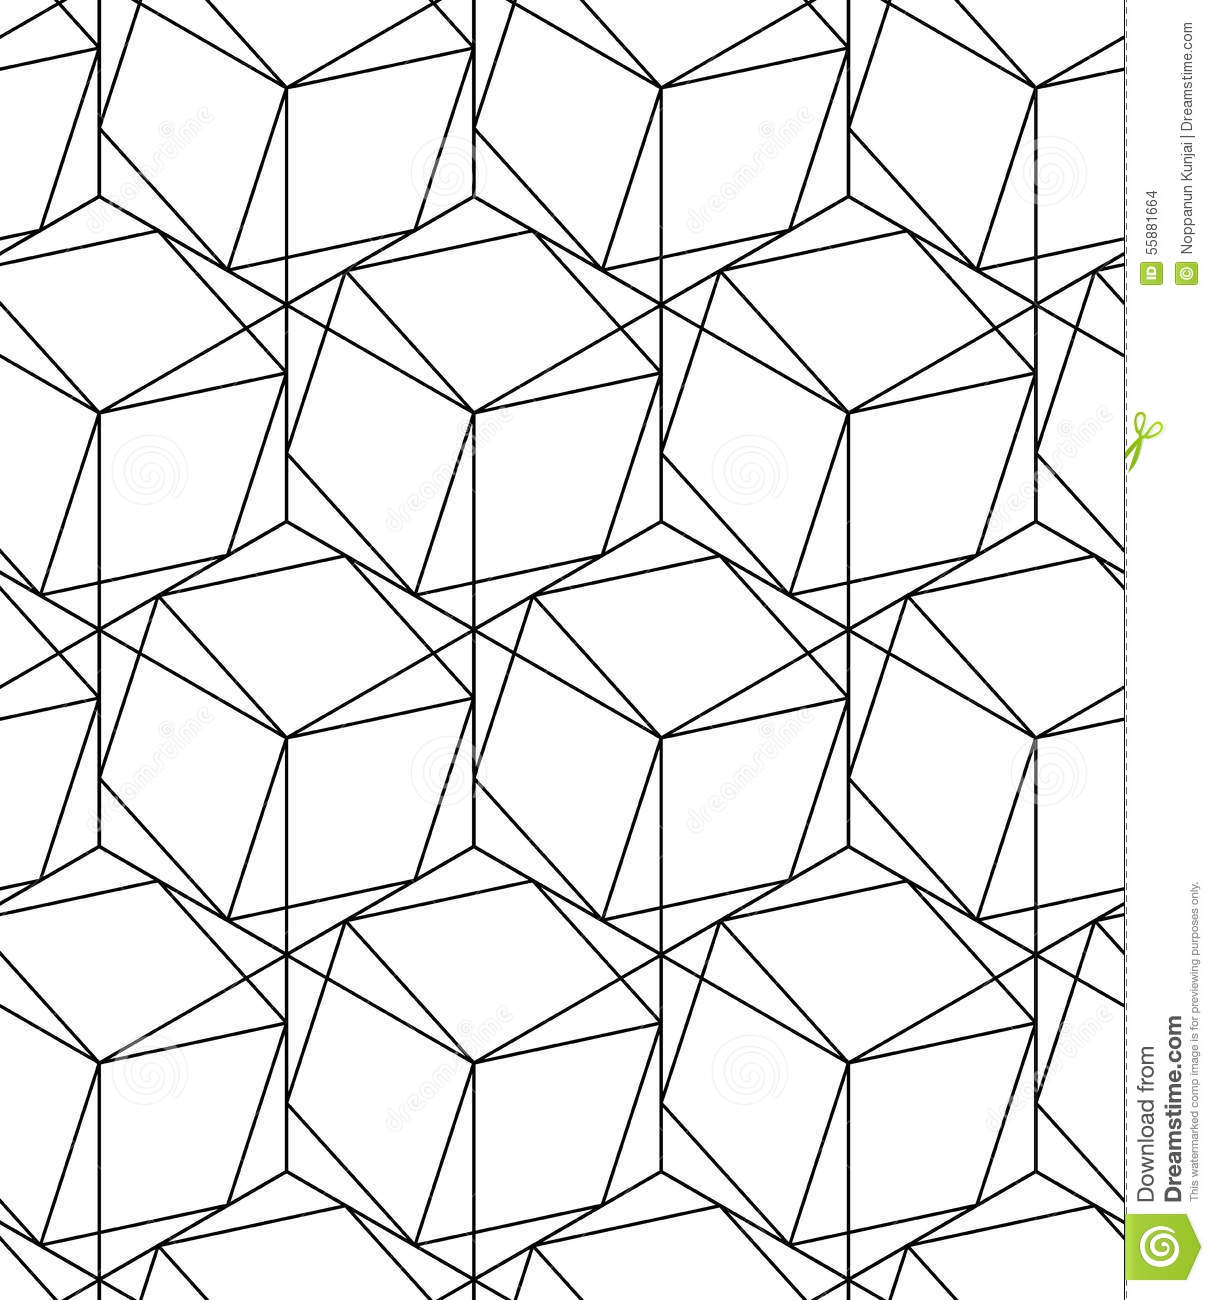 Geometric Line Design Patterns : Black and white geometric seamless pattern with line